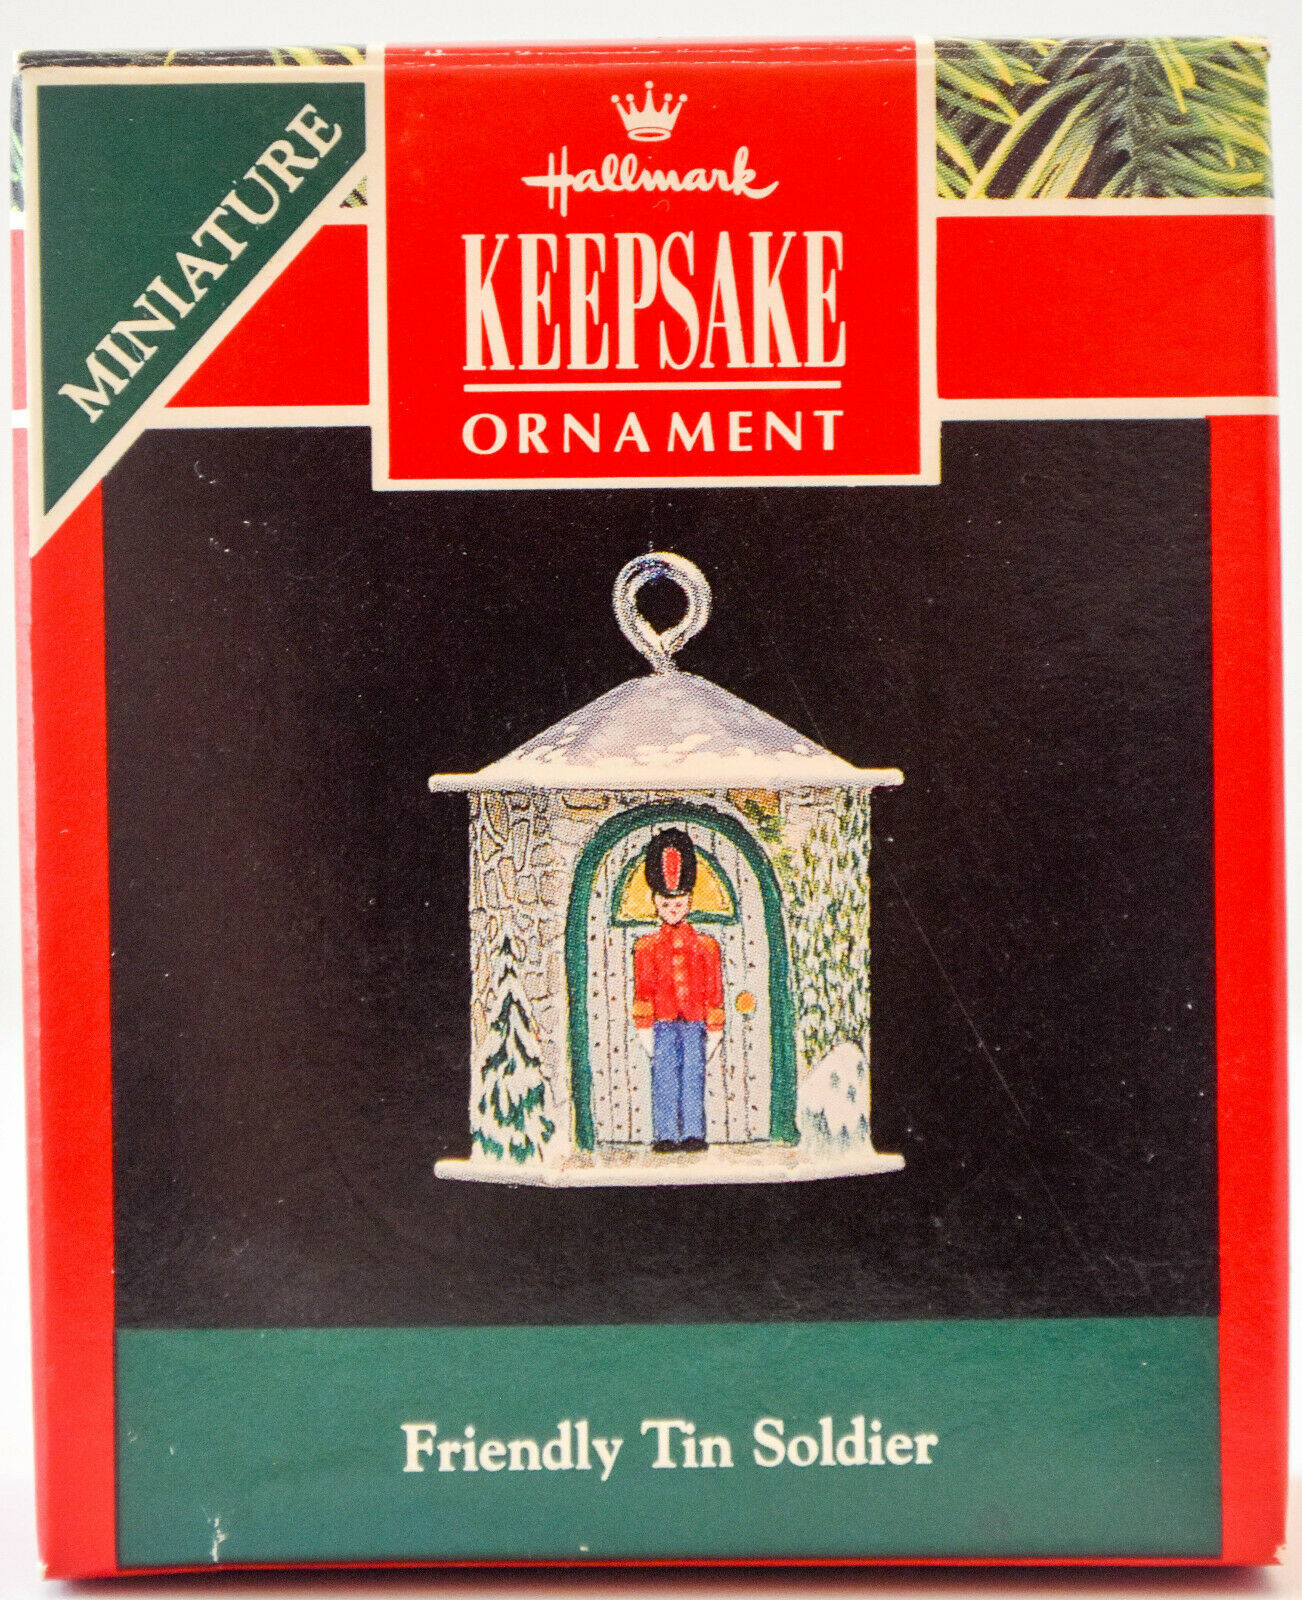 Primary image for Hallmark  Friendly Tin Soldier 1992  Keepsake  Miniature Ornament